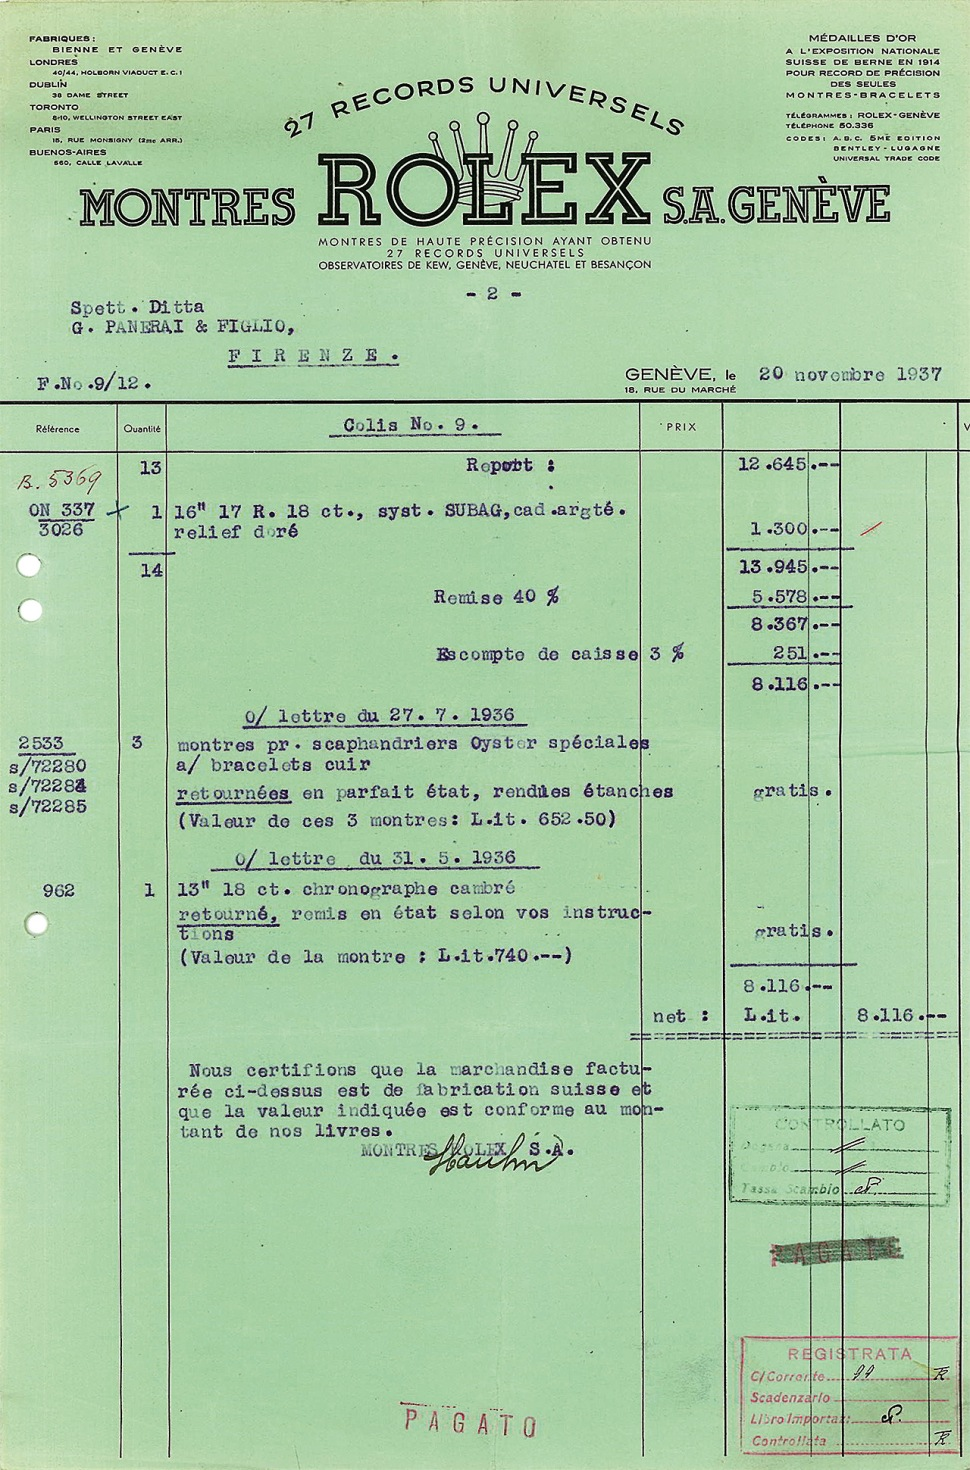 190723-rolex-2533-invoice-for-panerai-20-november-1937